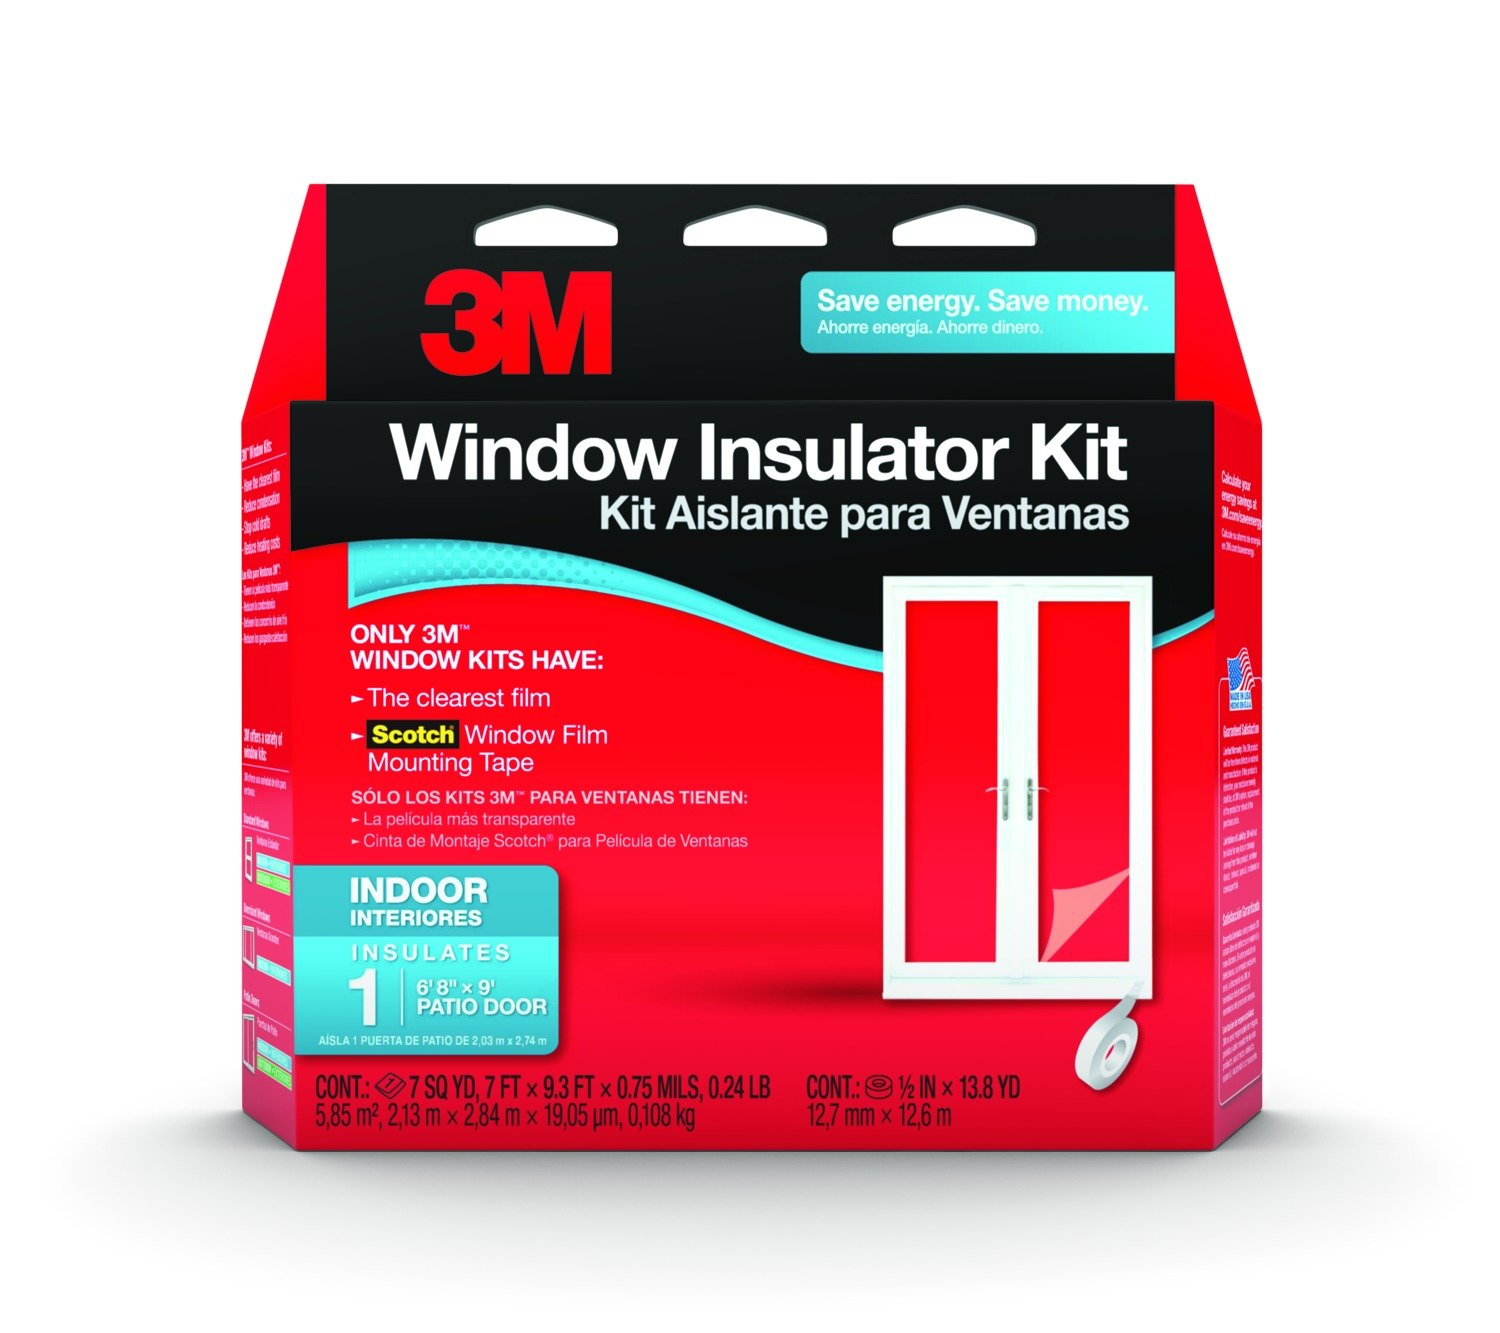 3M Indoor Patio Door Insulator Kit, 1 Patio Door   Masking Tape   Amazon.com